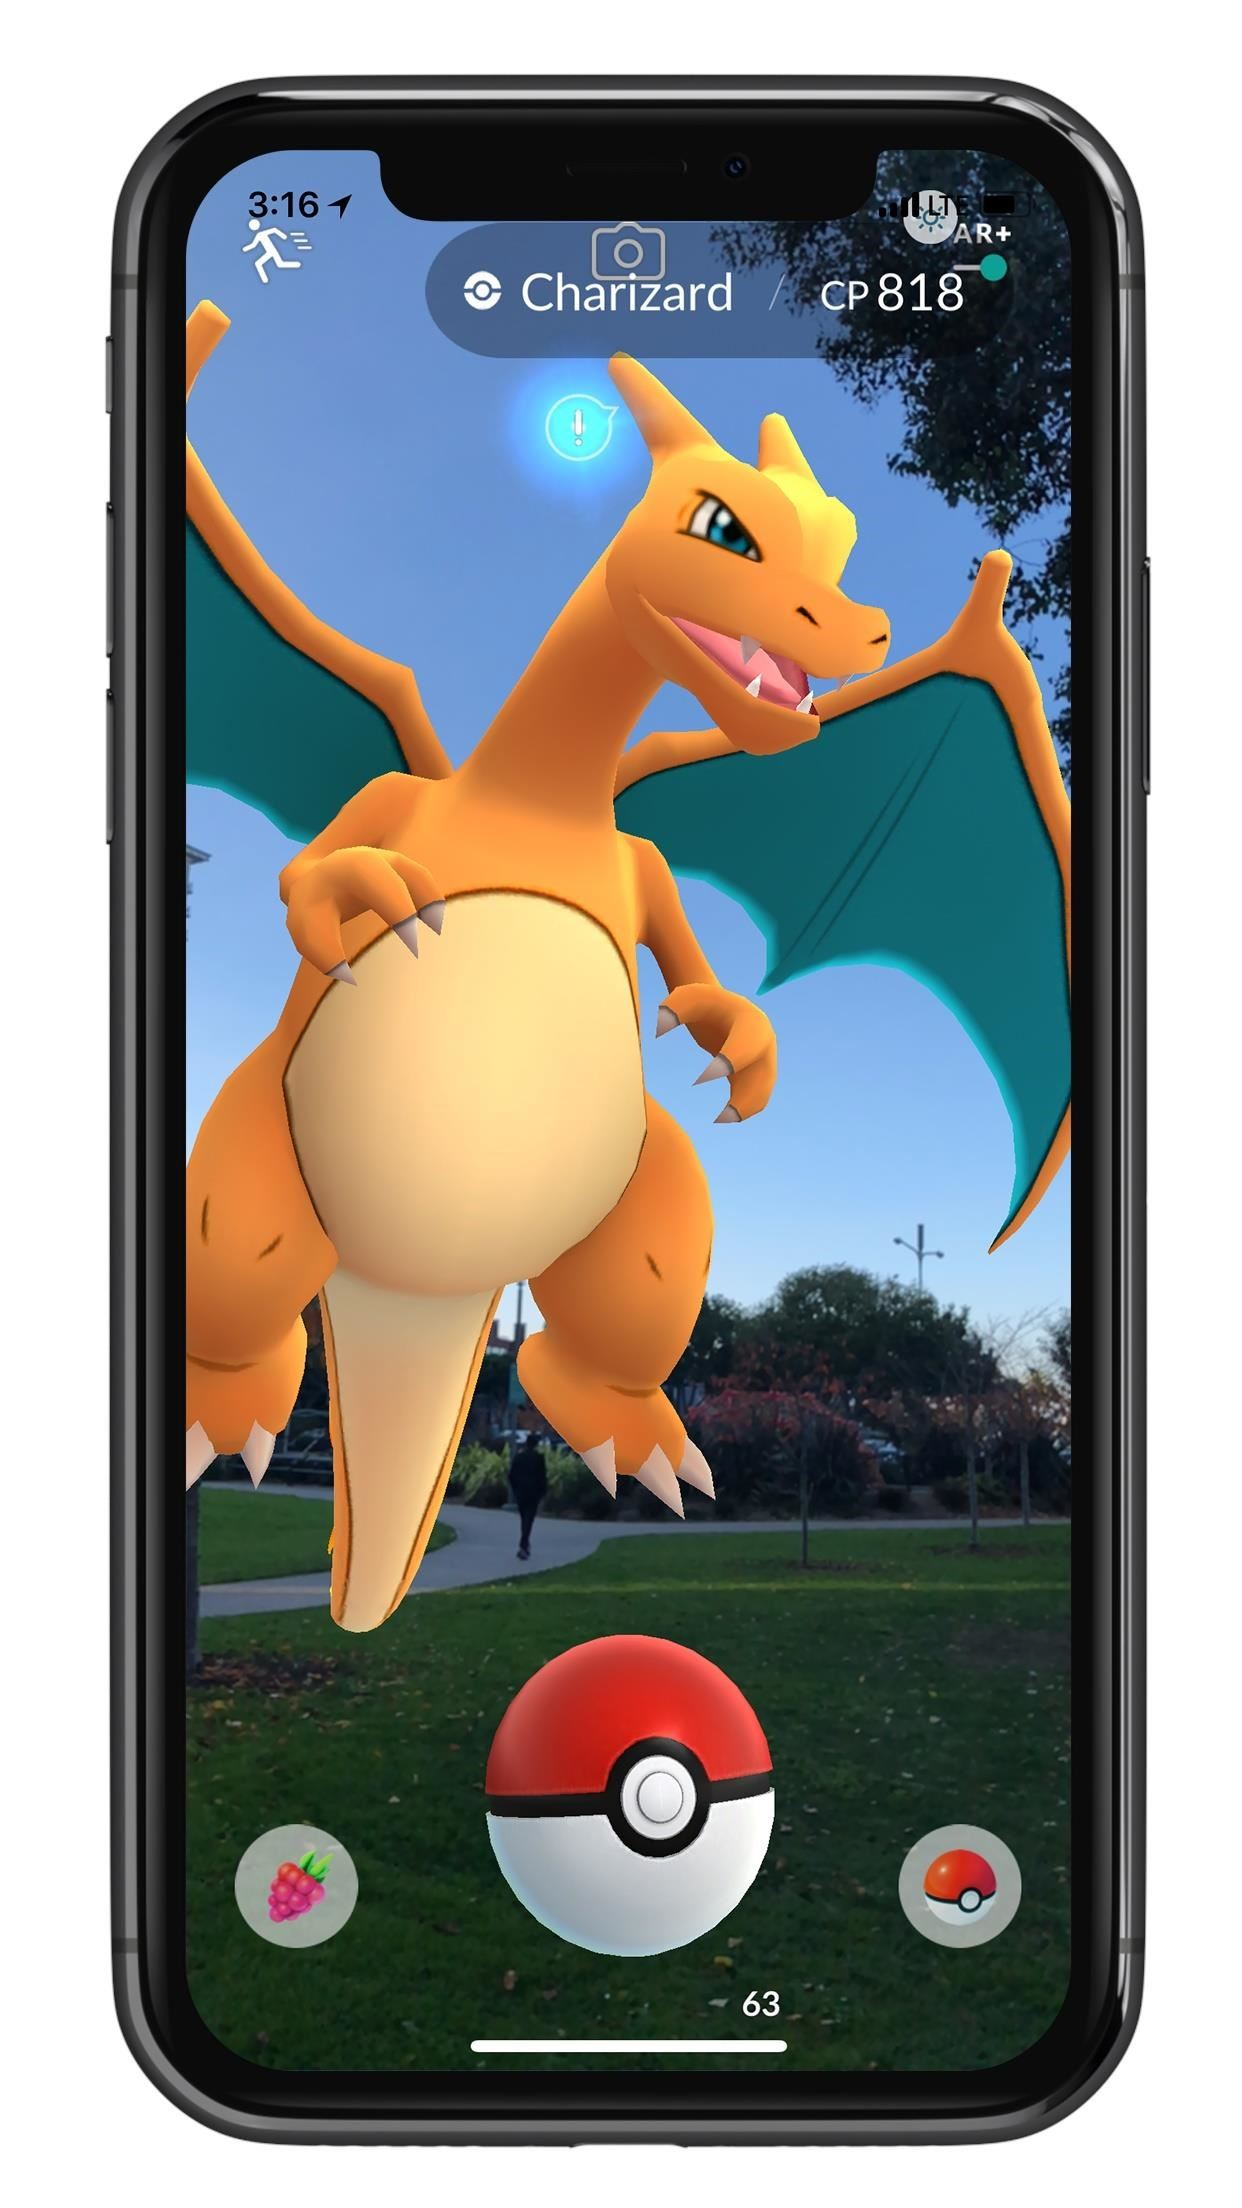 Apple AR: ARKit Update for Pokémon Go Makes Monsters Bigger & Smarter